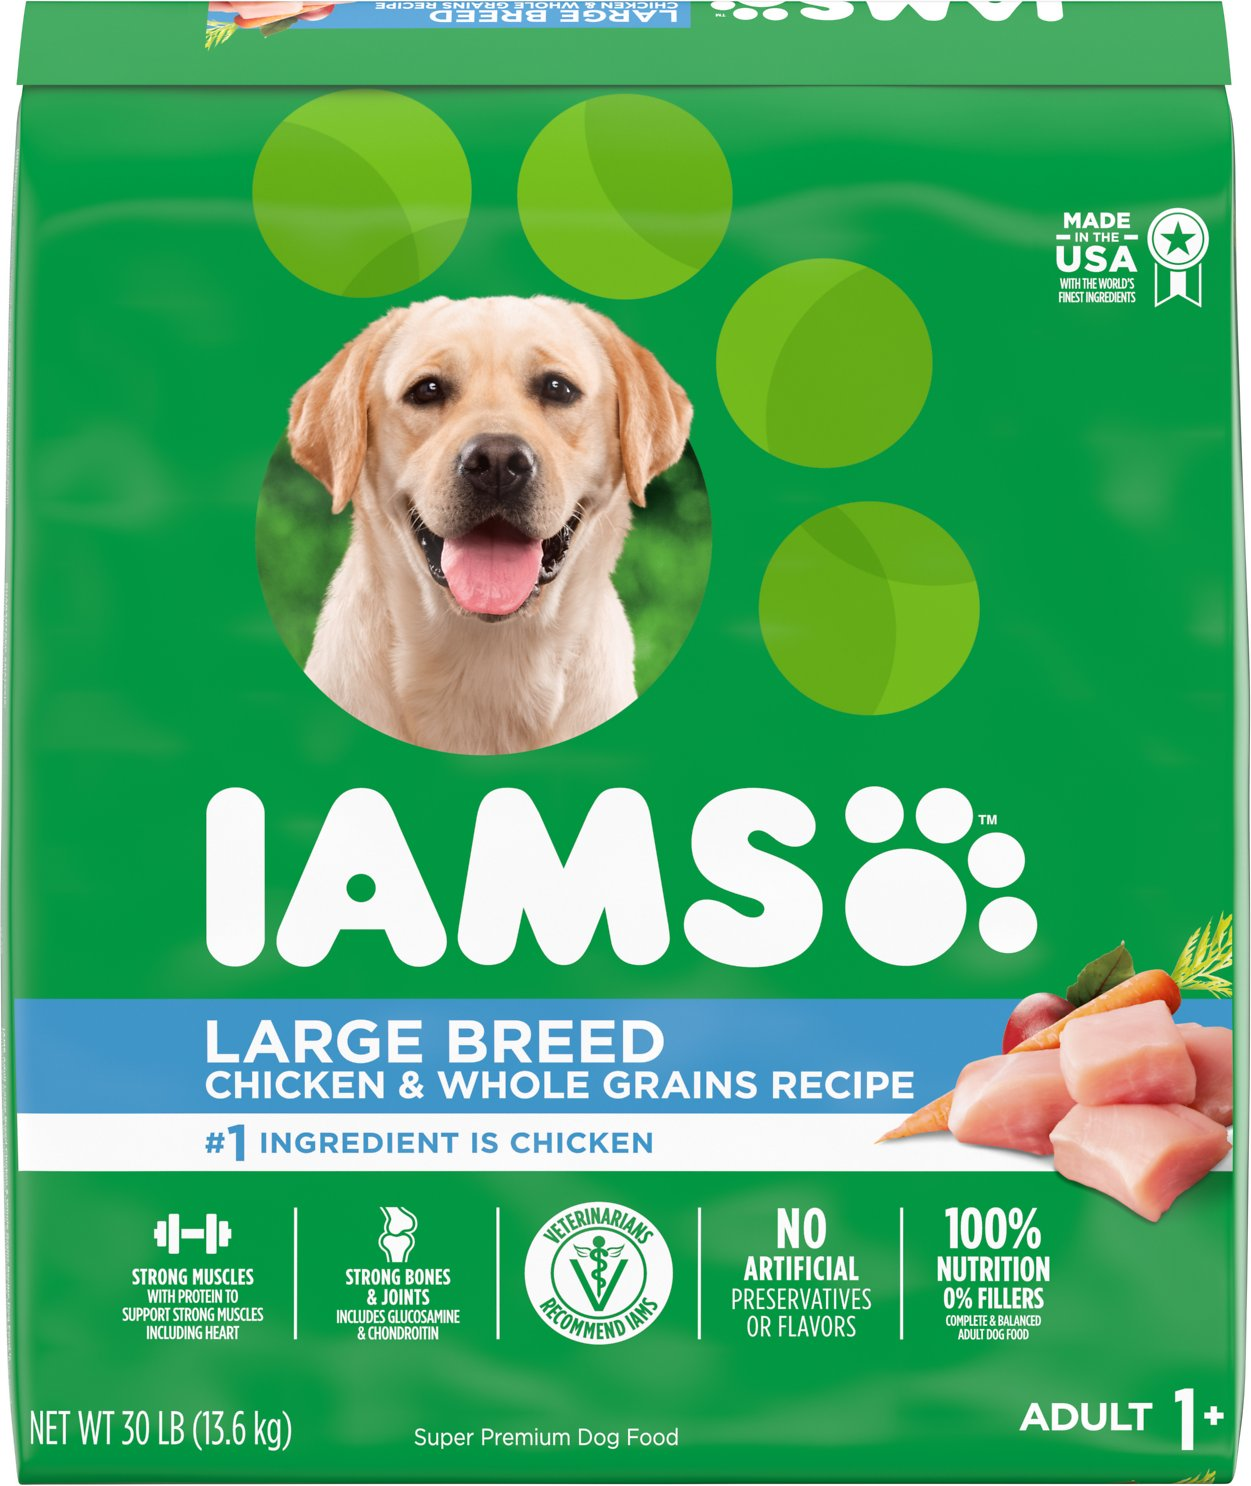 Iams Large Breed Dog Food